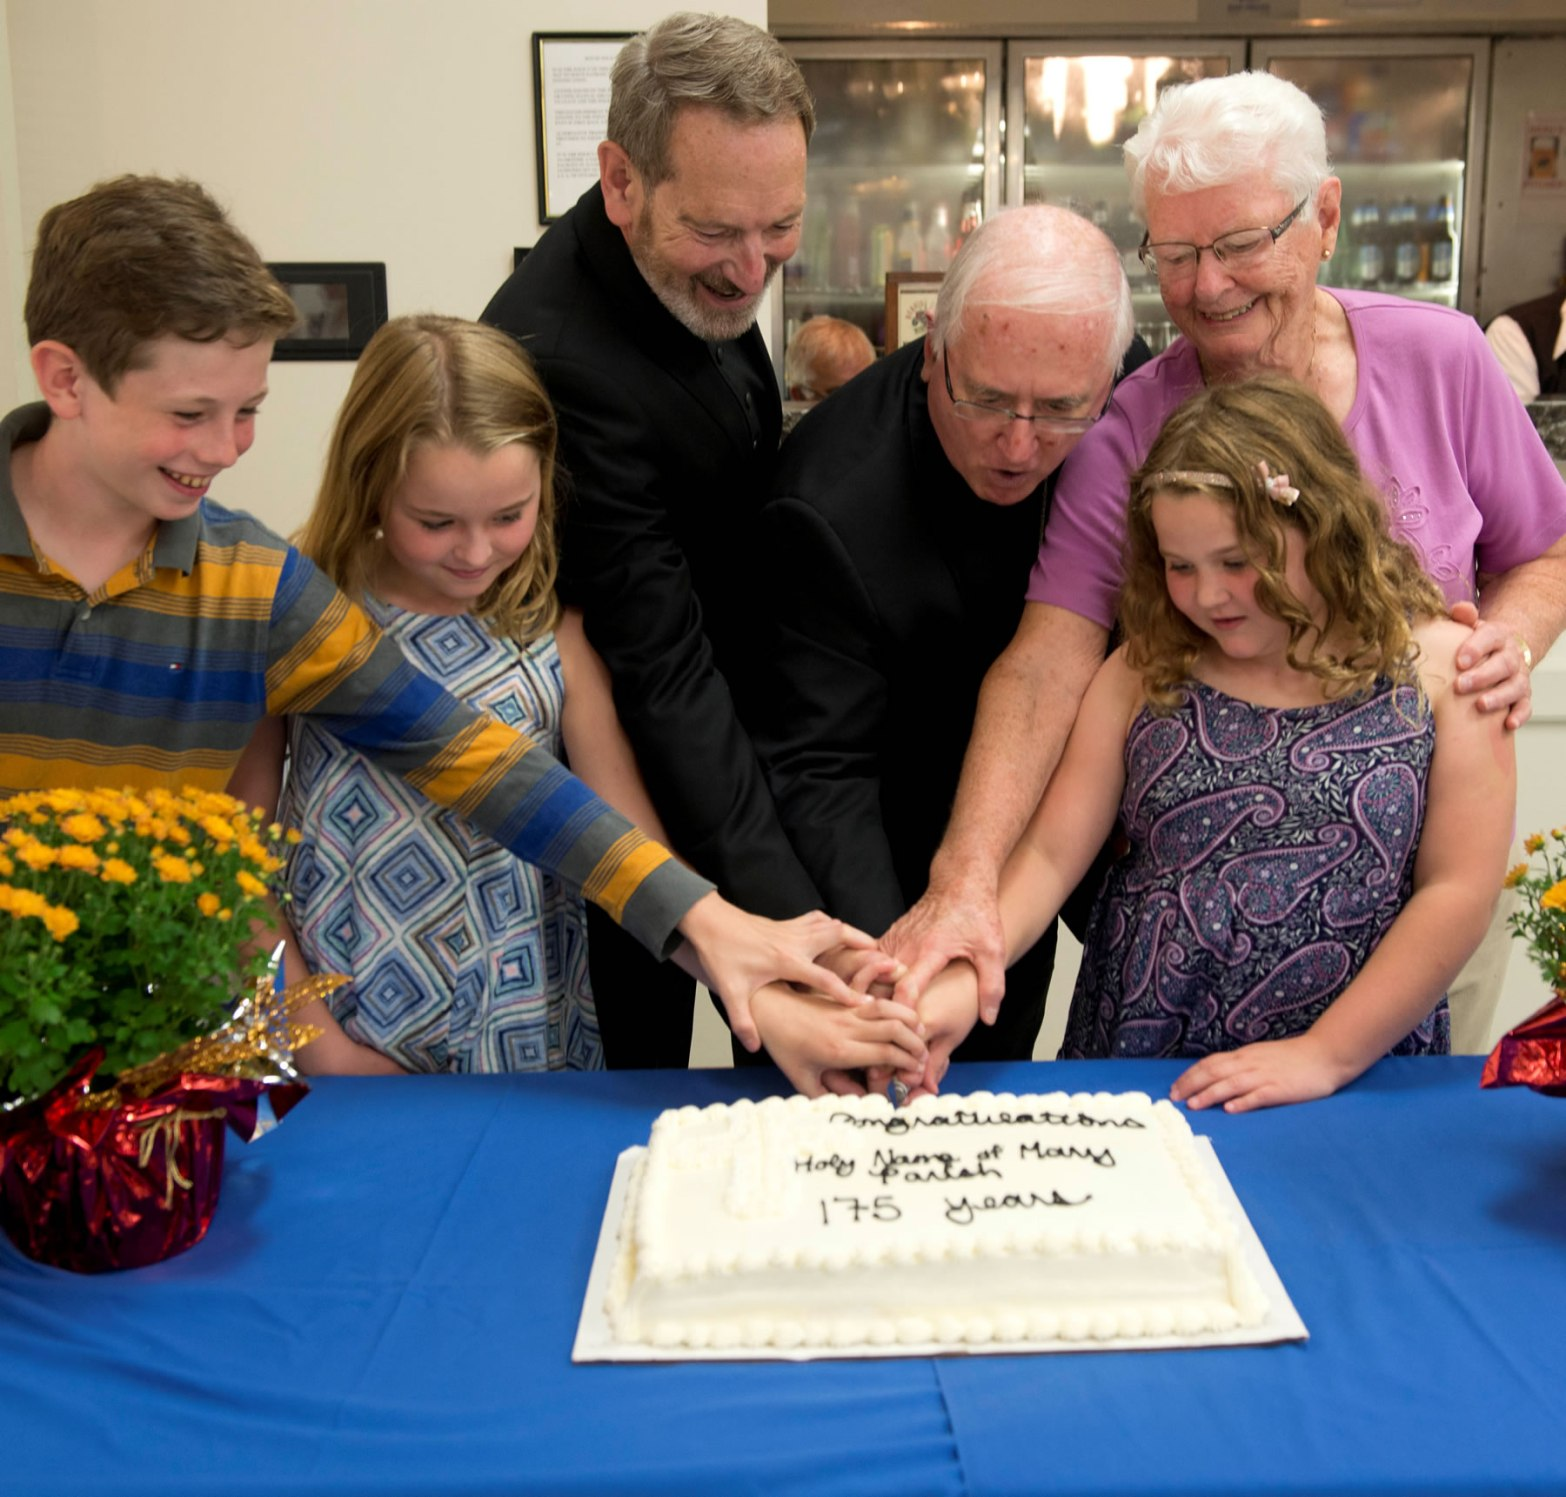 Celebration at Holy Name of Mary